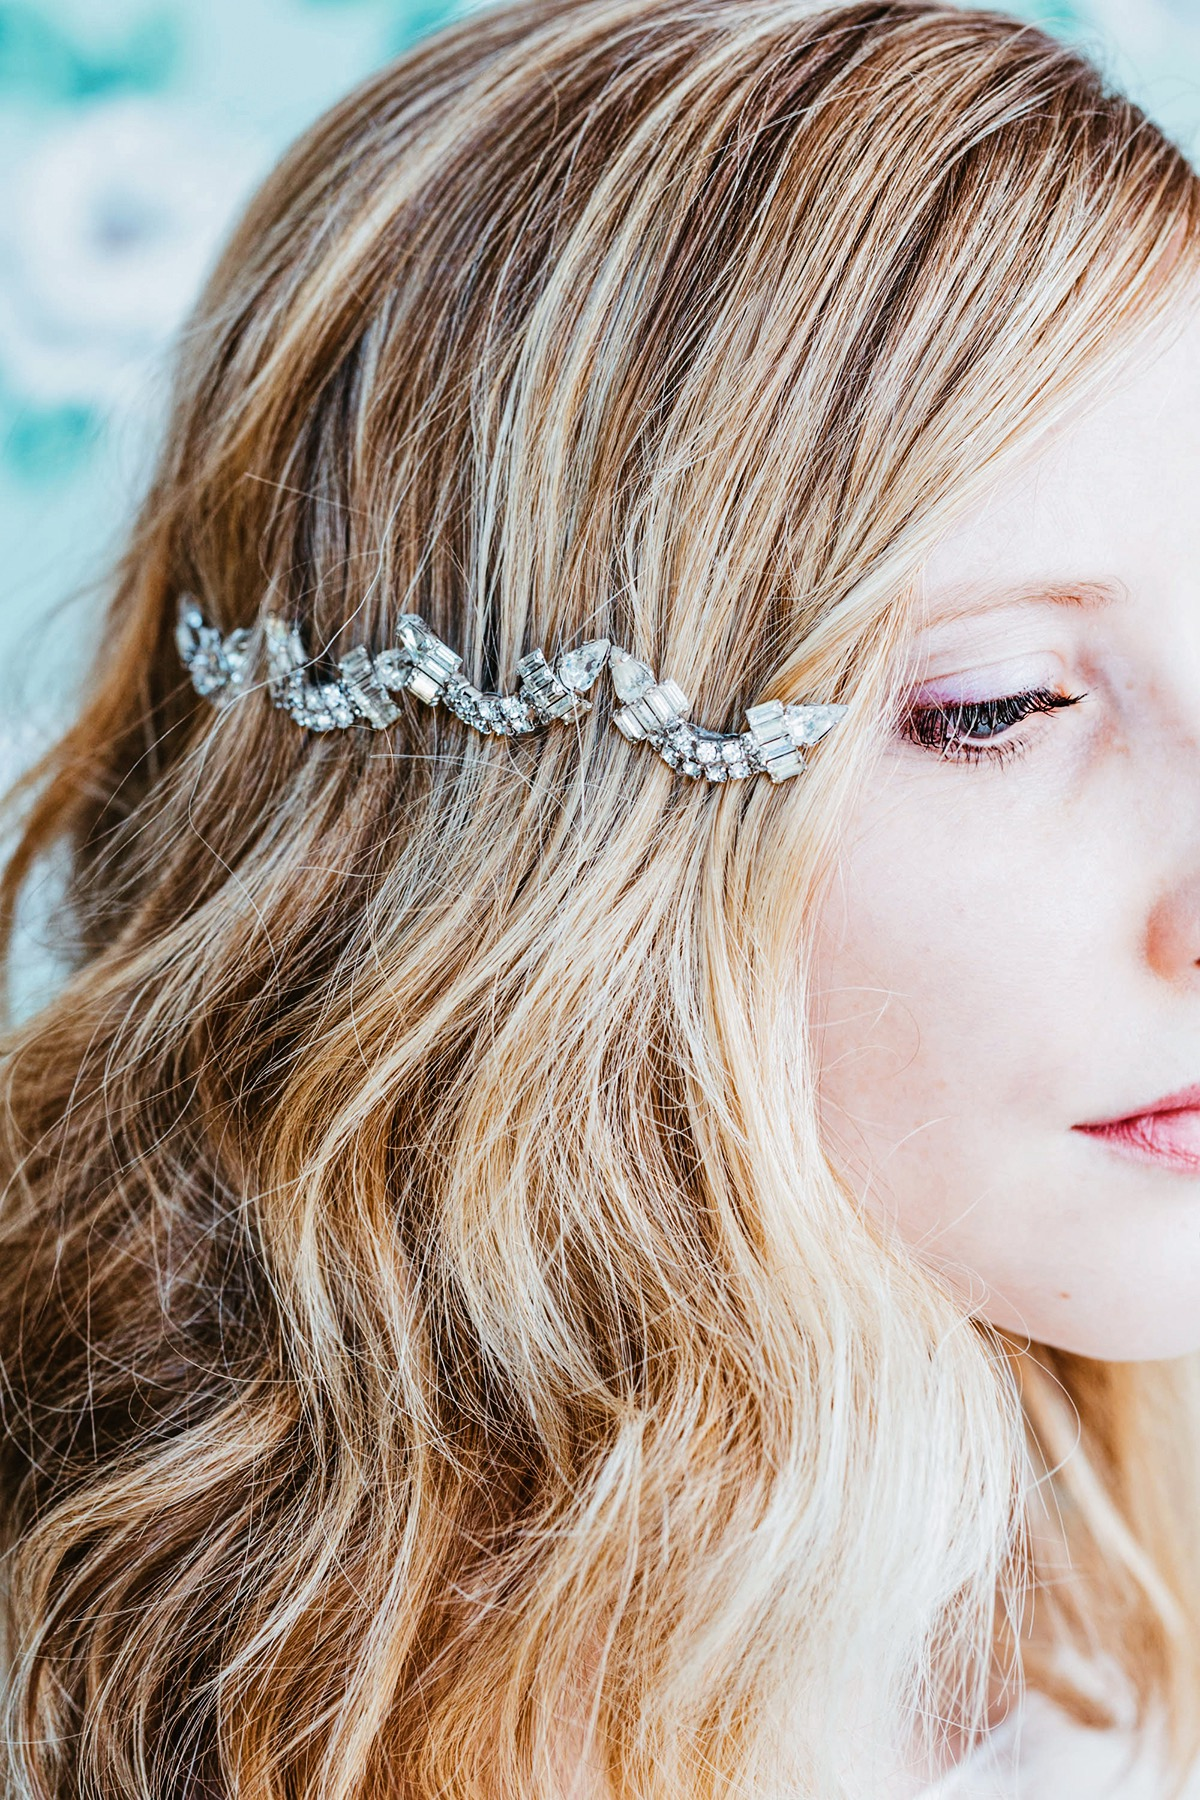 5 DIY New Year's Eve Accessories Ideas 50